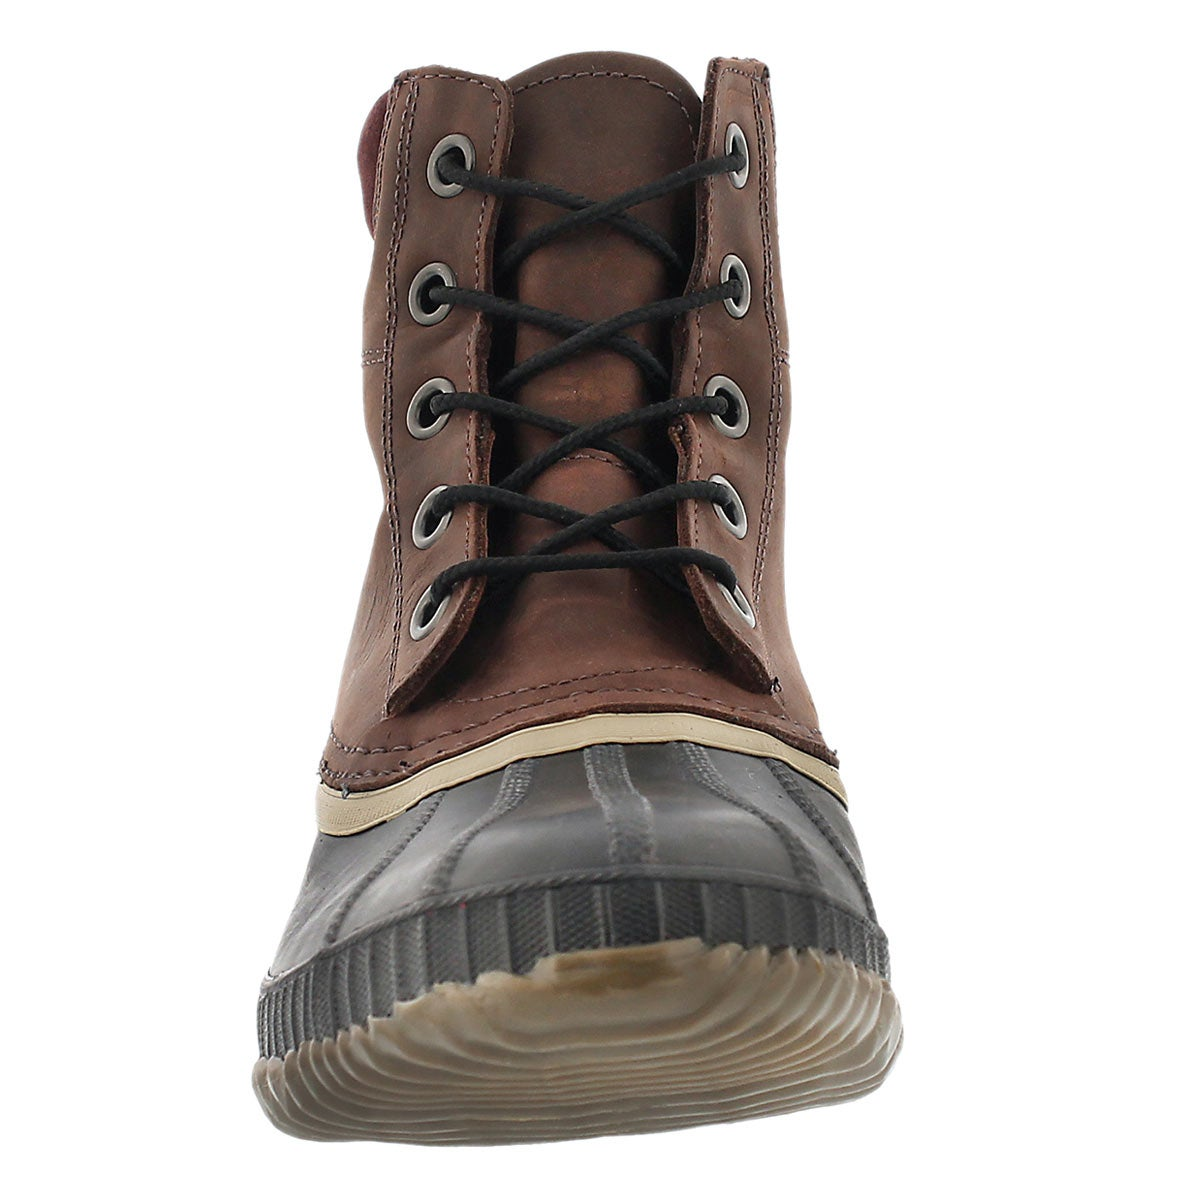 Mns Cheyanne Lace brown winter boot